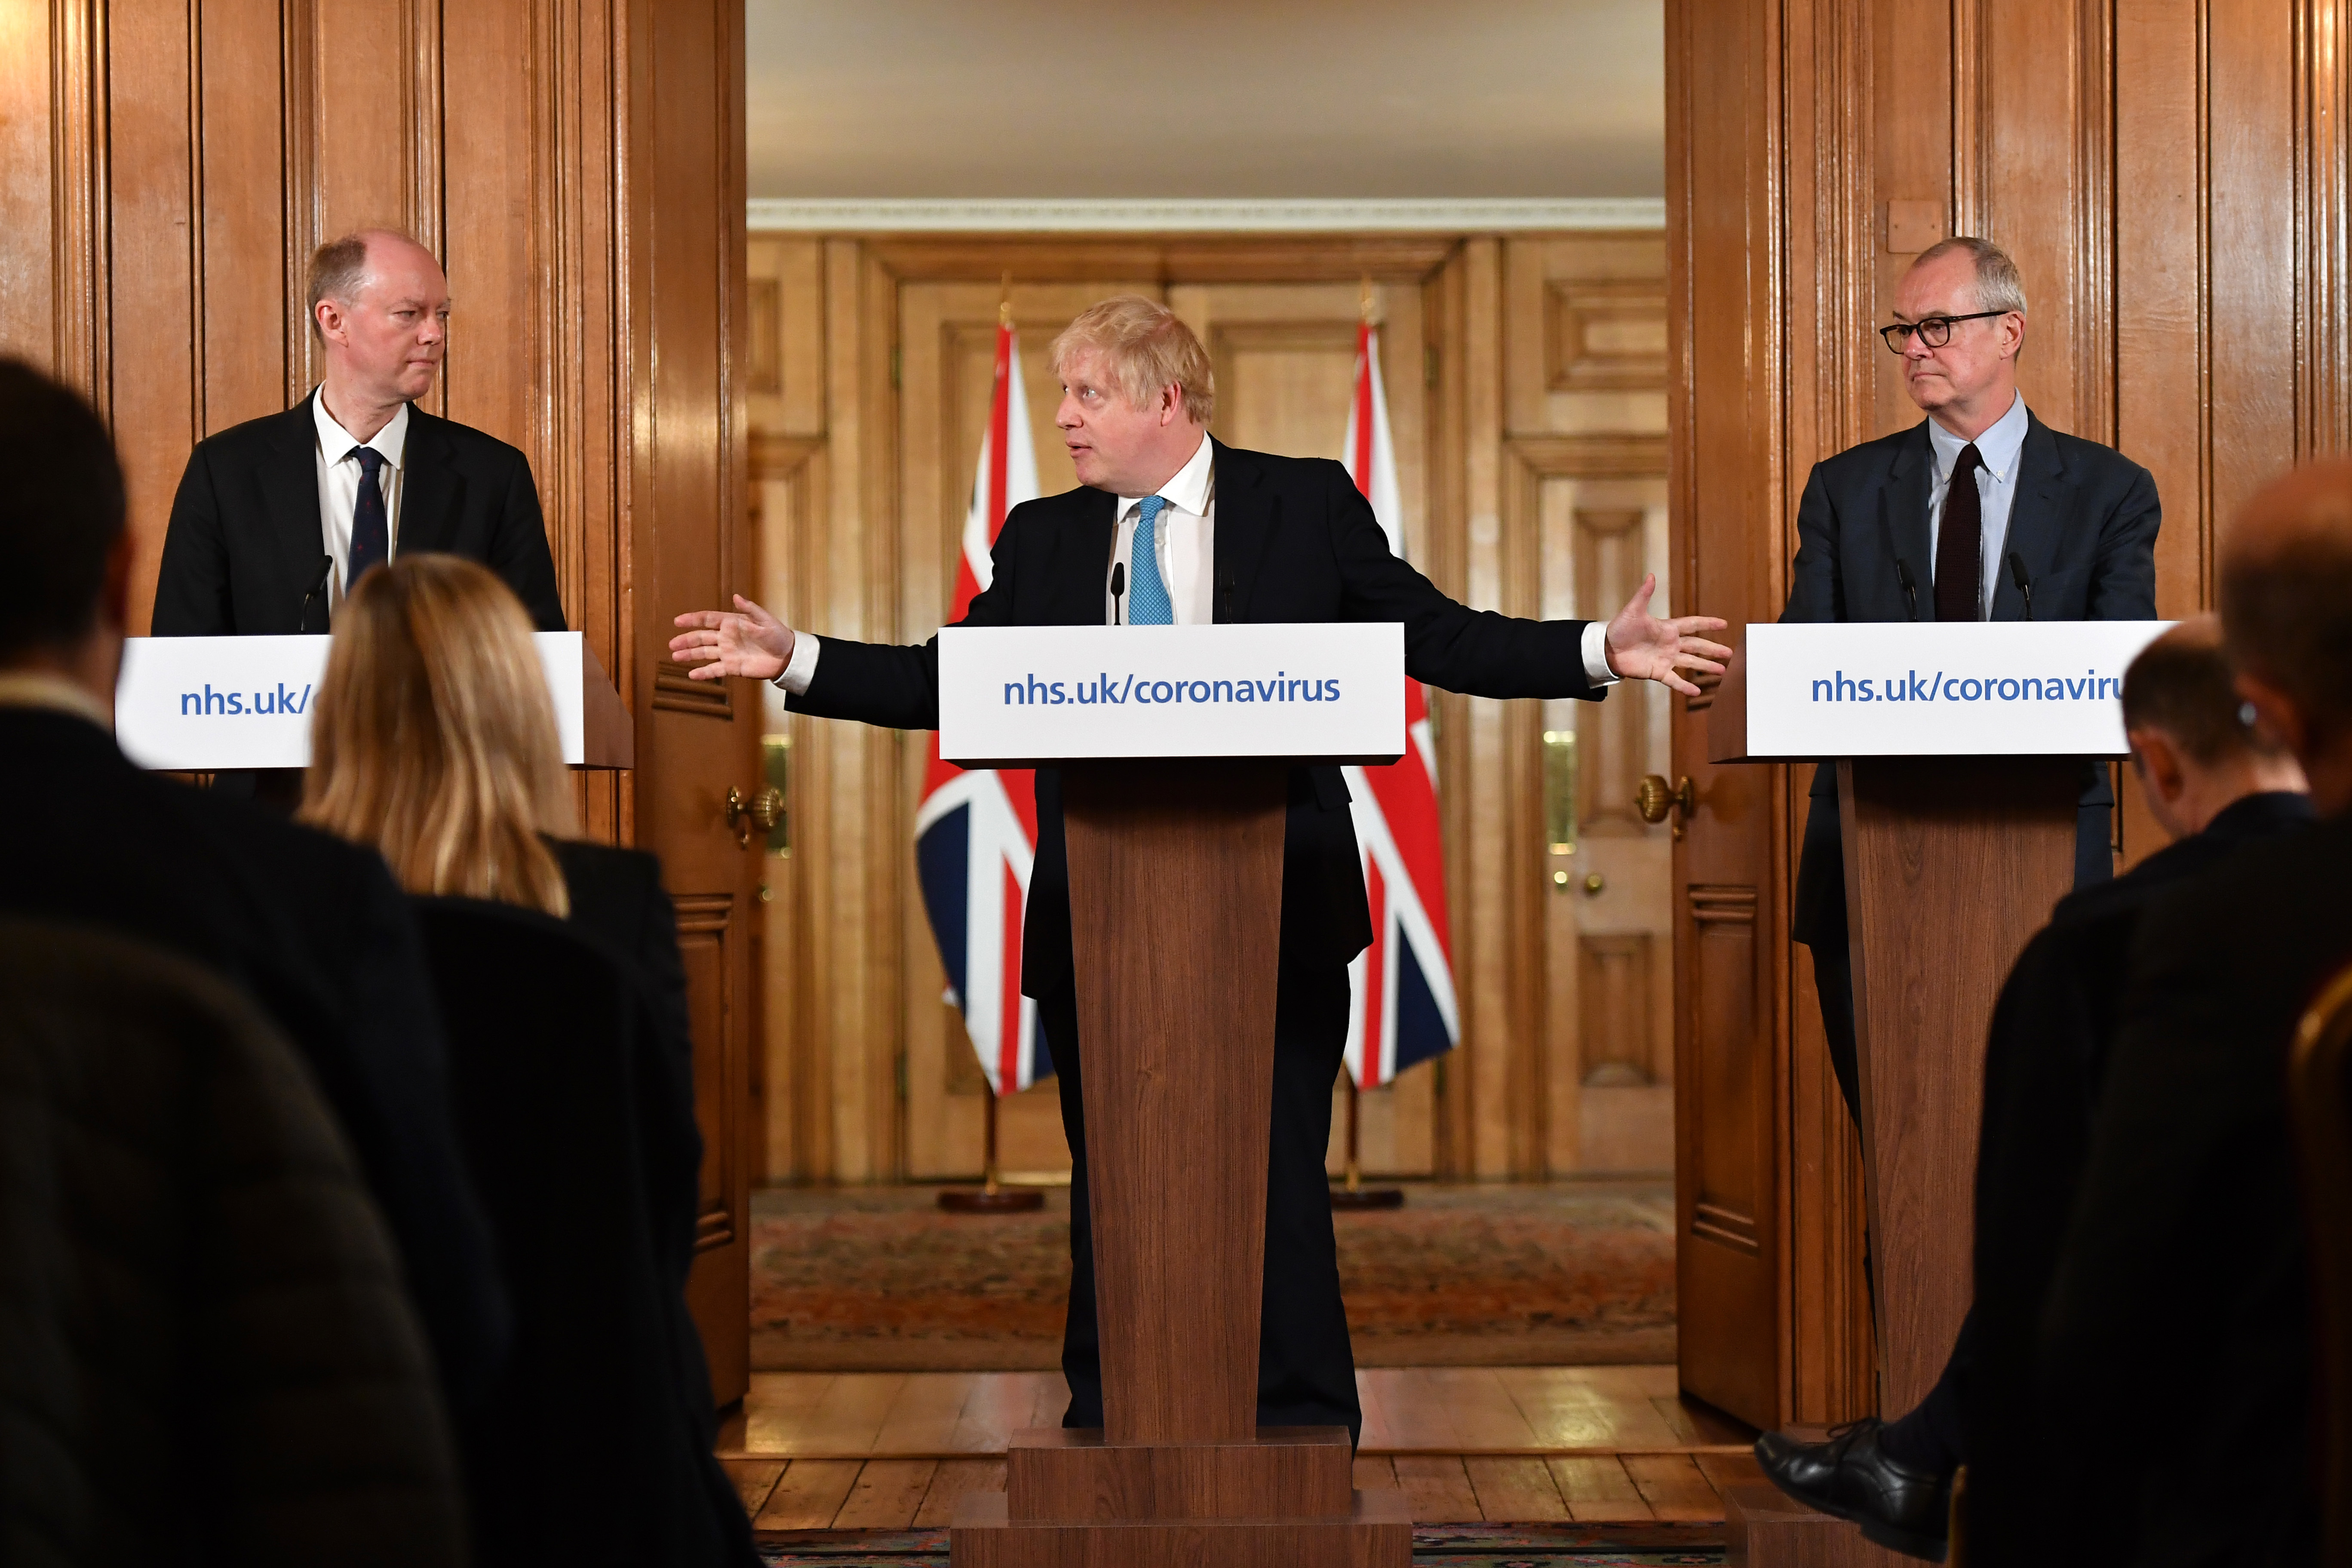 Chief Medical Officer Professor Chris Whitty (left) and Chief Scientific Adviser Patrick Vallance (Right) watch as Prime Minister Boris Johnson